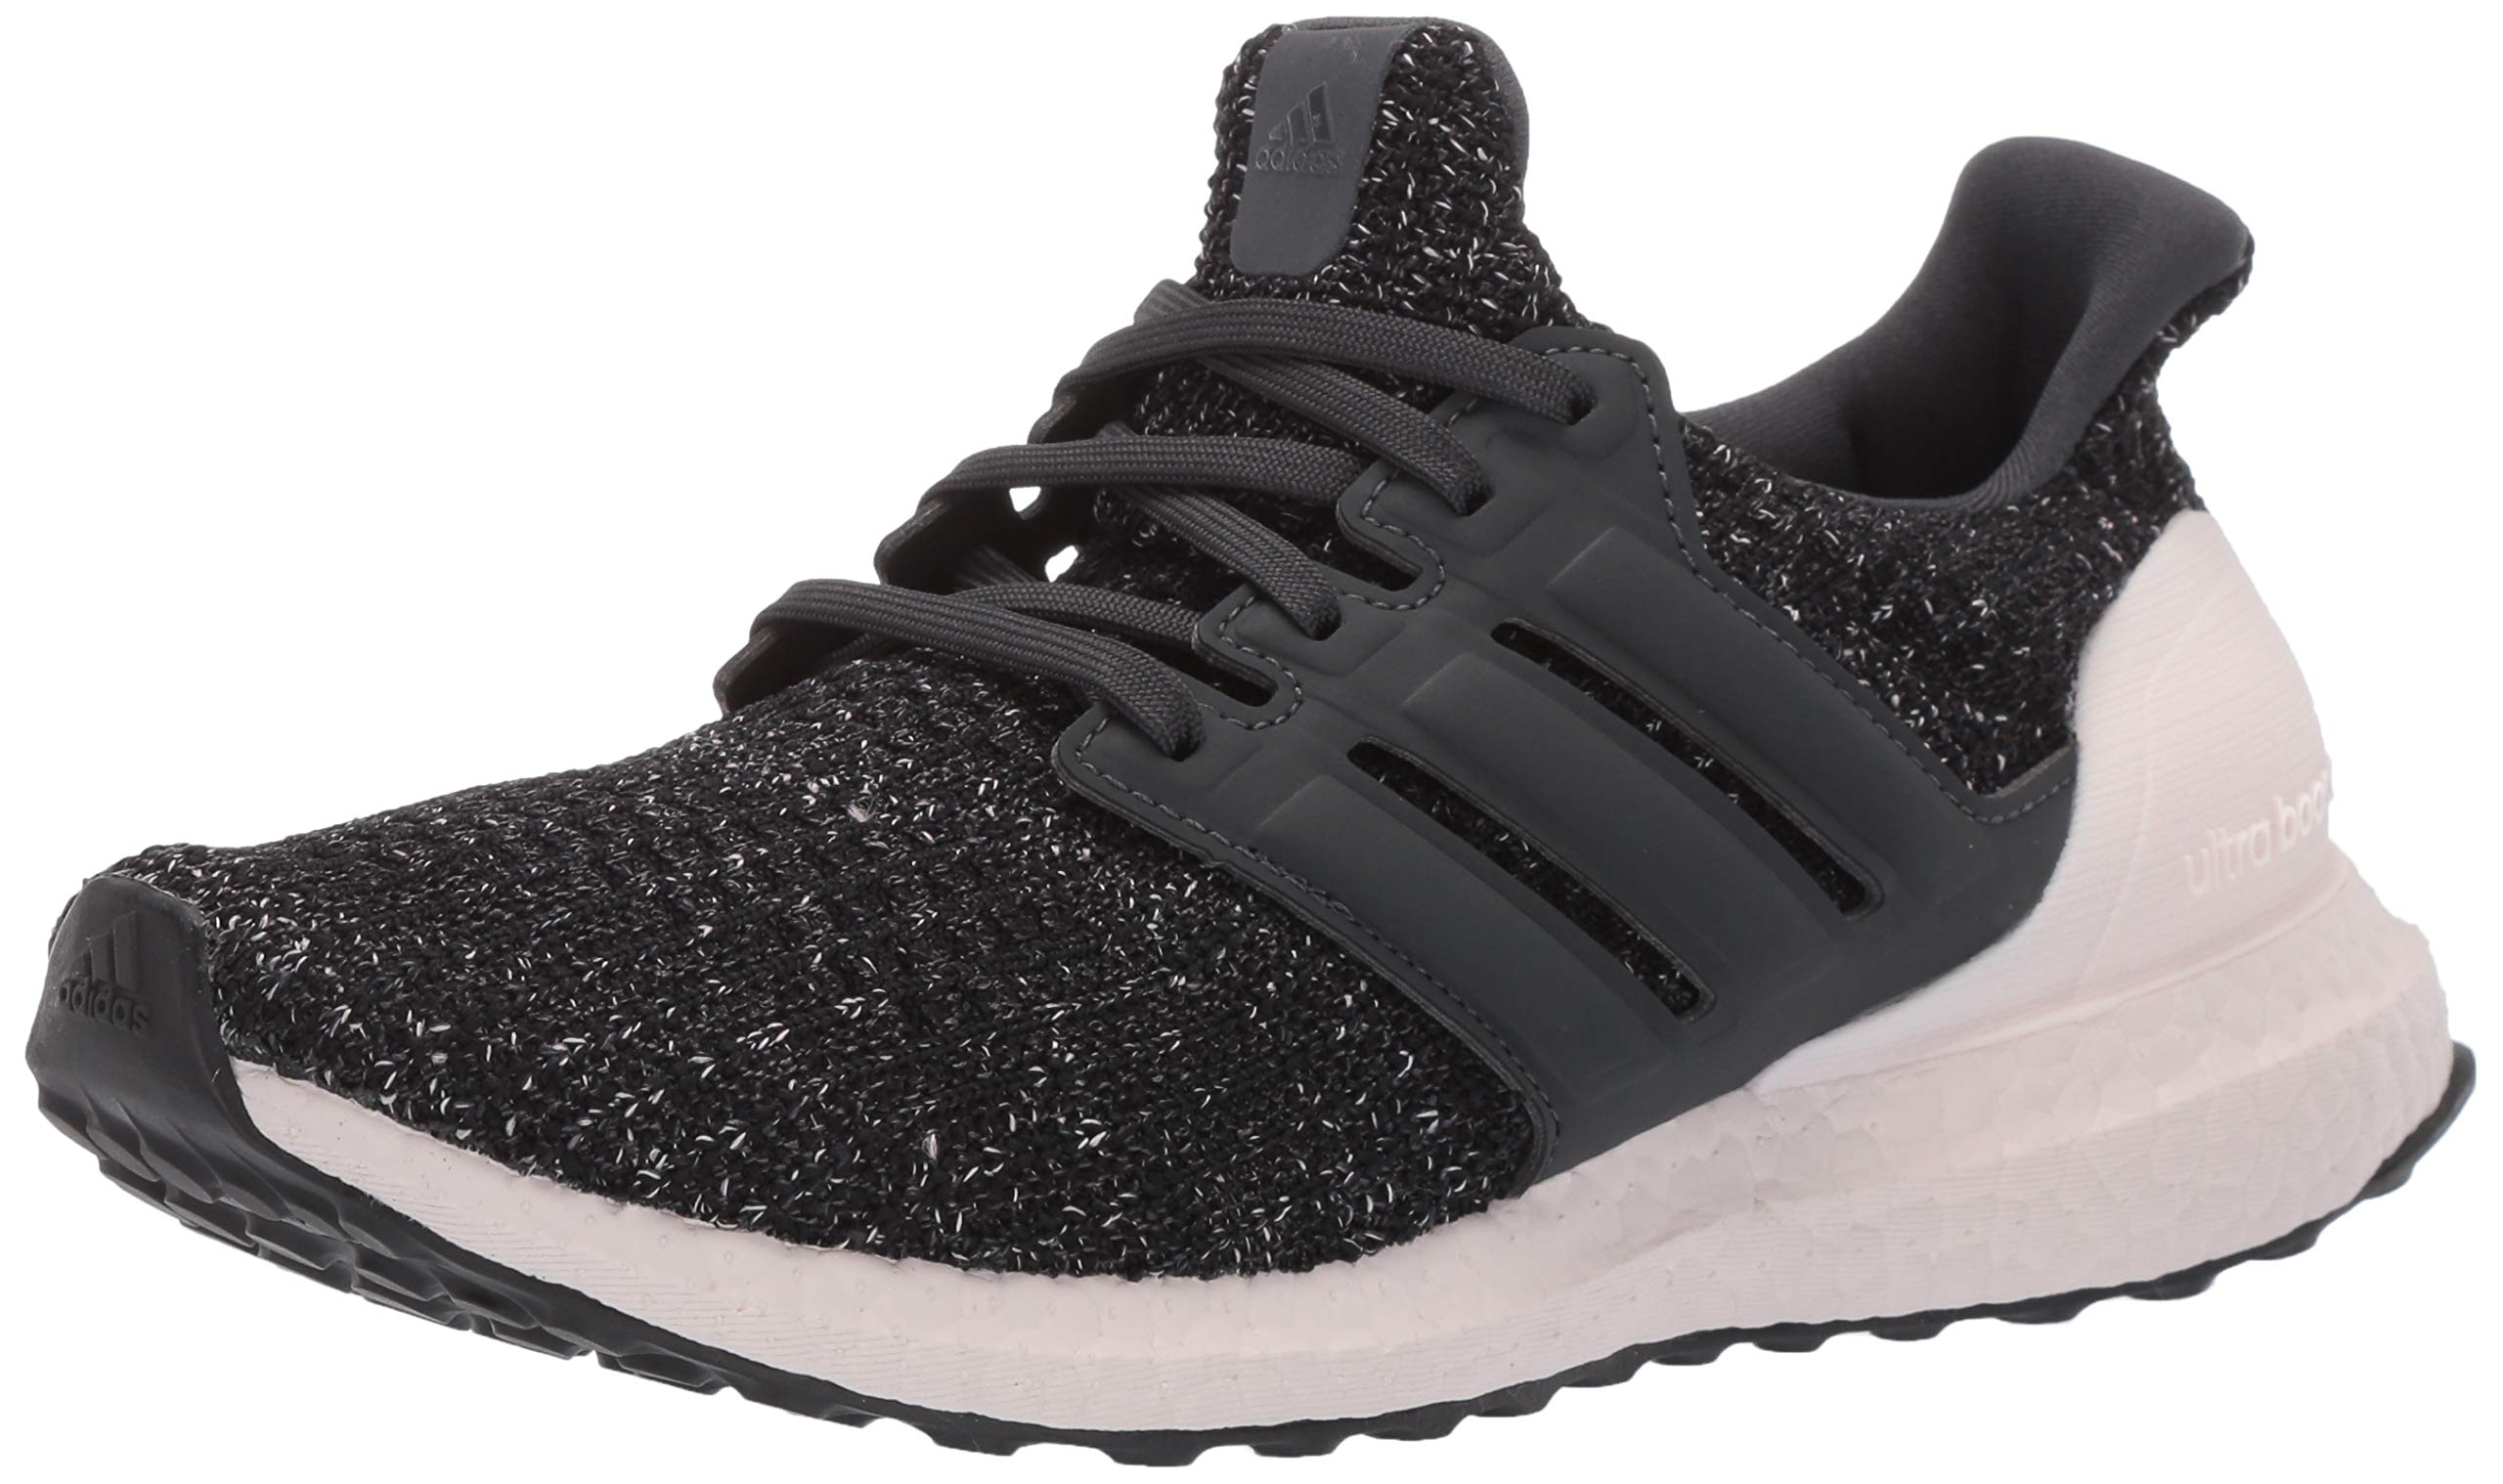 adidas Women's Ultraboost, Black/Carbon/Orchid Tint, 8 M US